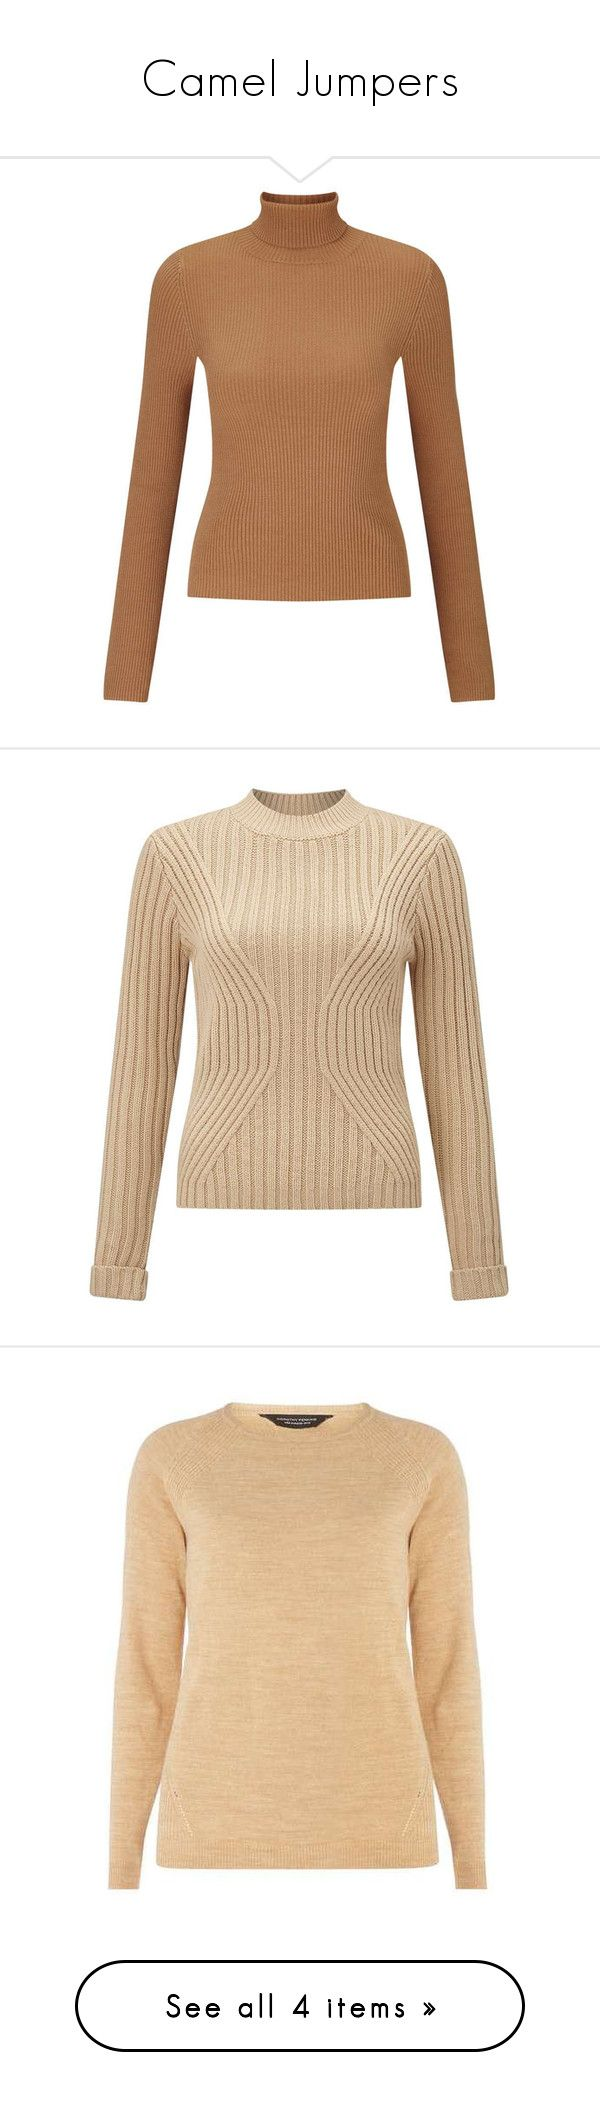 """""""Camel Jumpers"""" by stylish-sparkles ❤ liked on Polyvore featuring tops, sweaters, jumper, shirts, camel, petite, roll neck jumper, petite jumpers, beige sweater and petite sweaters"""